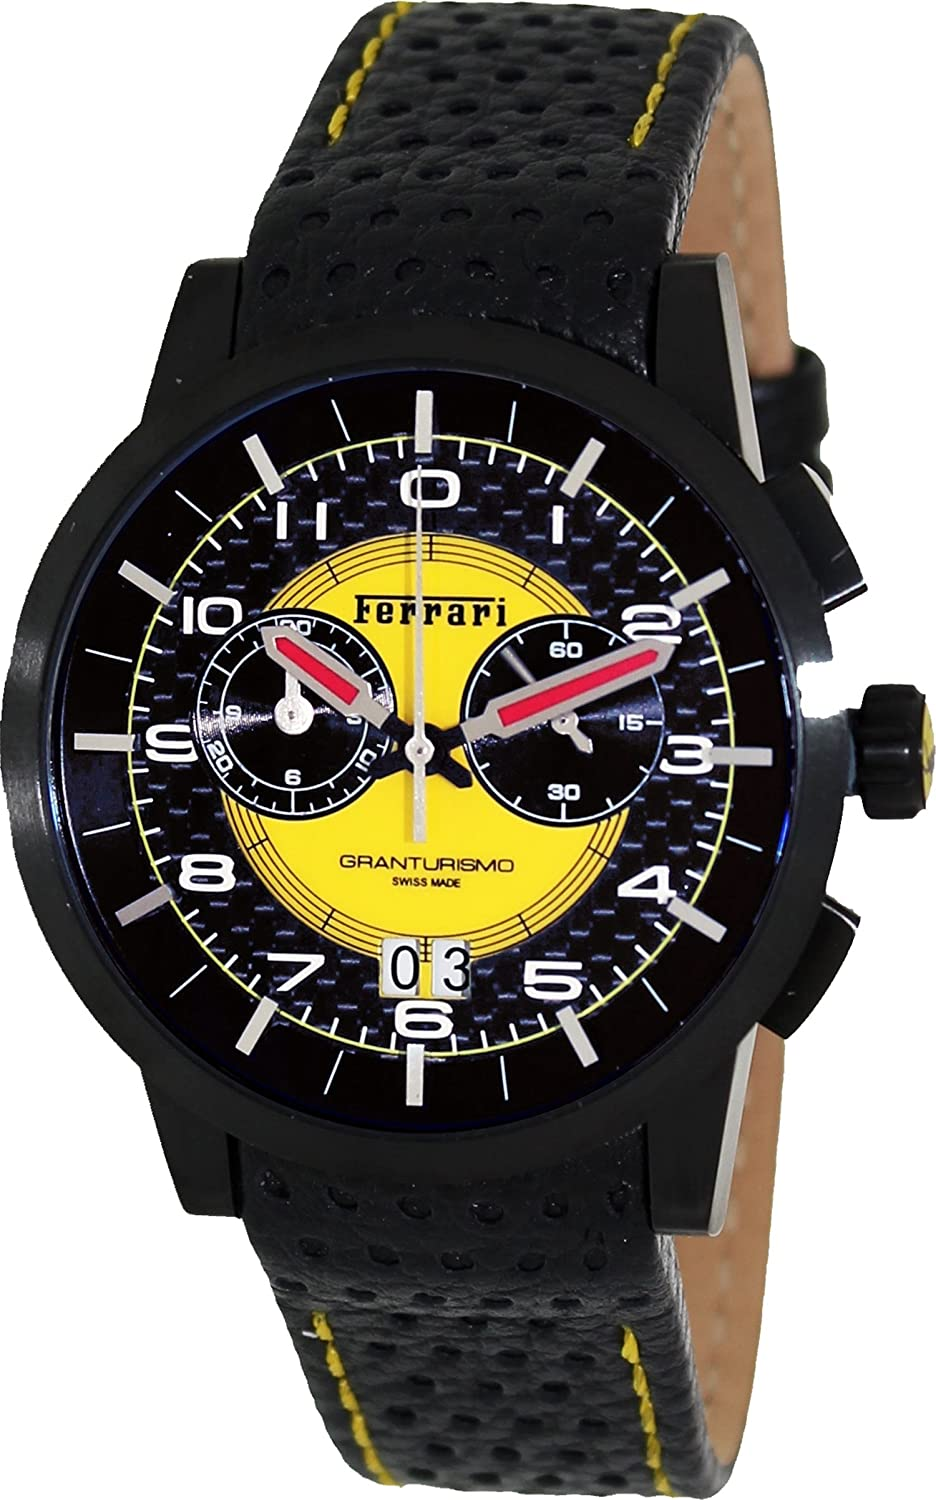 hublot watch men of s zm how time ferrari edition model does nd cost rx gemnation much at watches a com key limited